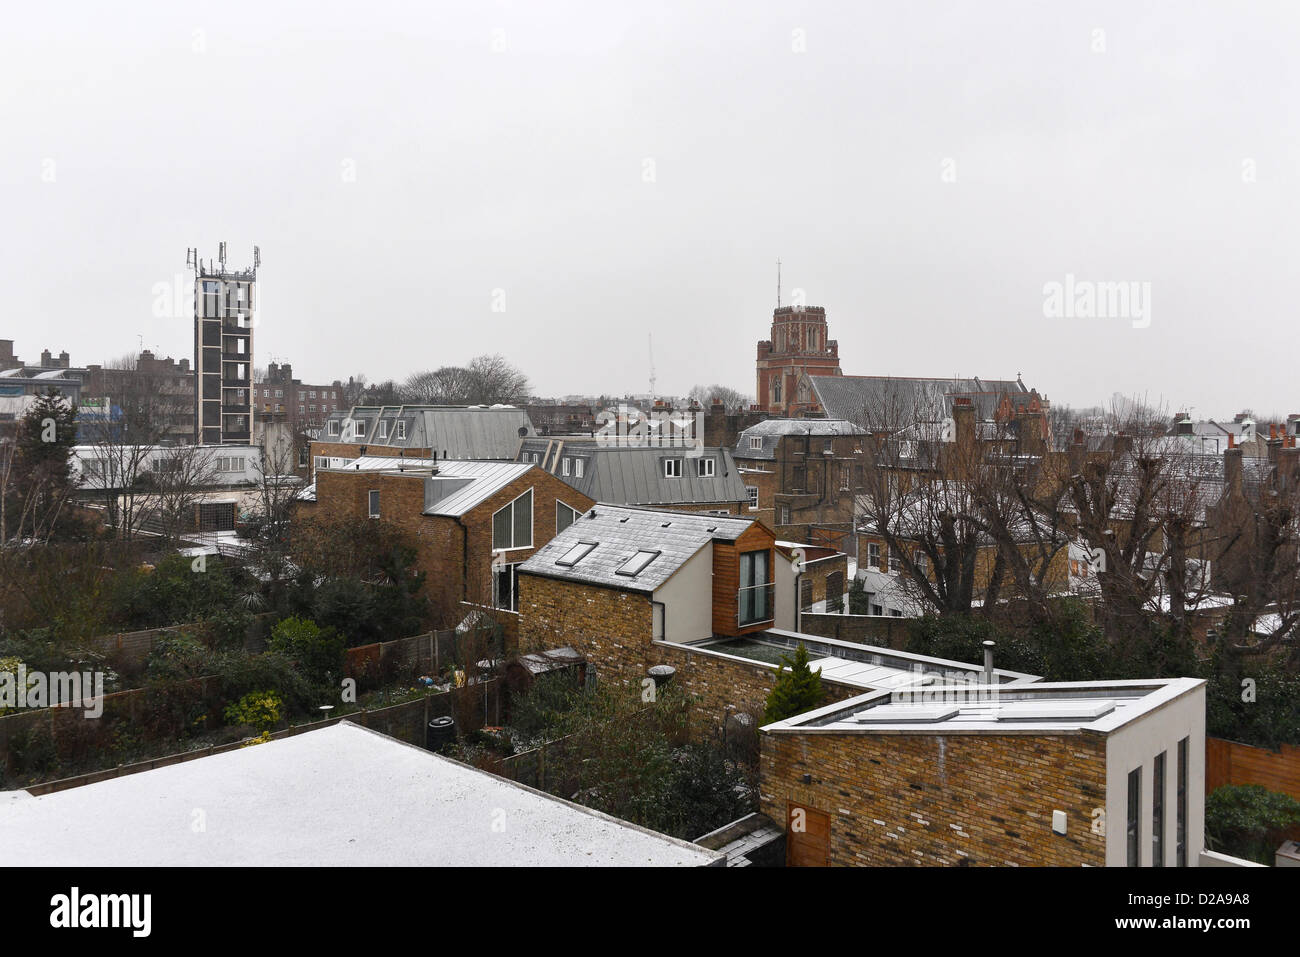 London, UK, 18th January 2013. Light snow starts to fall in the morning in Wandsworth, south west London. Credit: - Stock Image